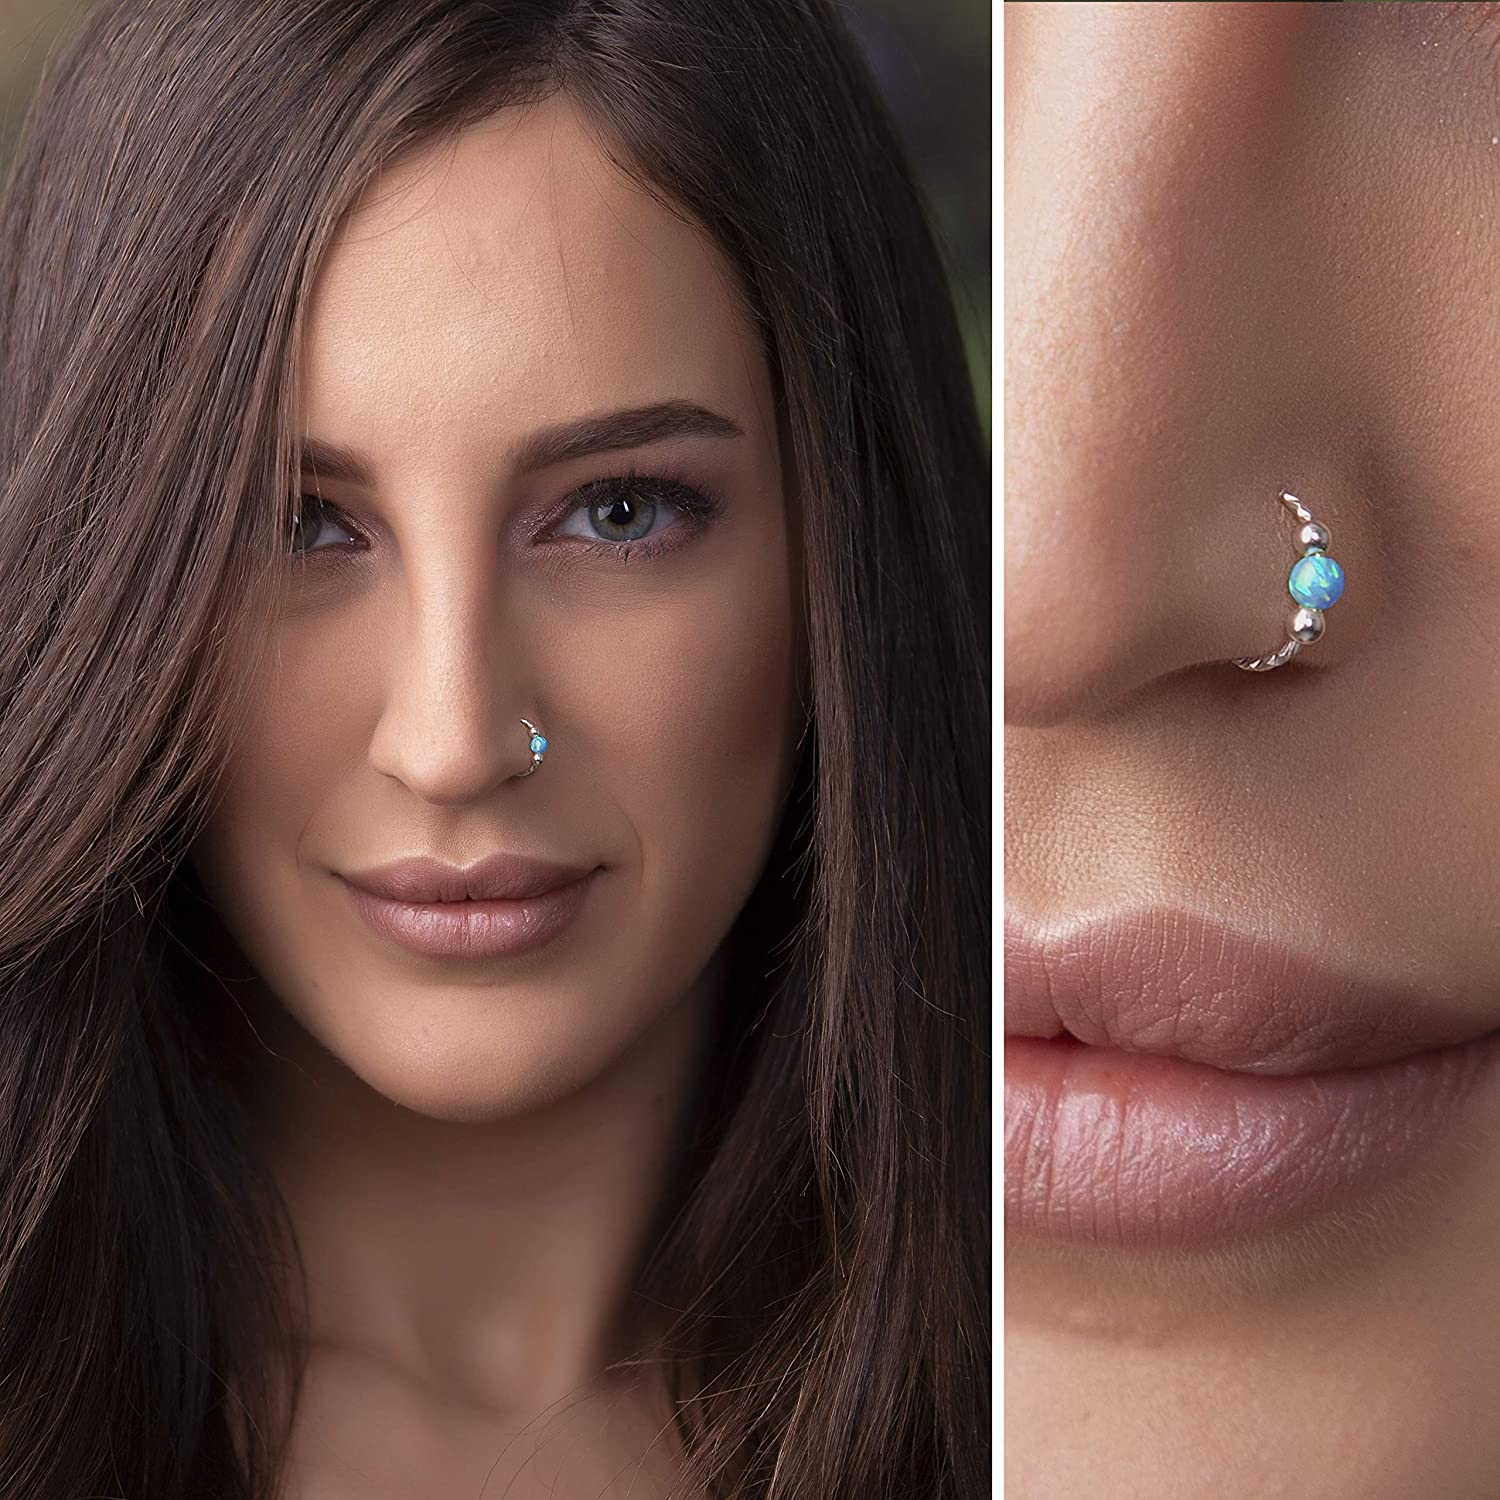 16g 18g 20g 22g Silver Blue Opal Nose Pircing,Opal Nose Ring,Nose Hoop,Nostril Hoop,Nose Jewelry,October/'s Birthstone Fathers  Day Gift